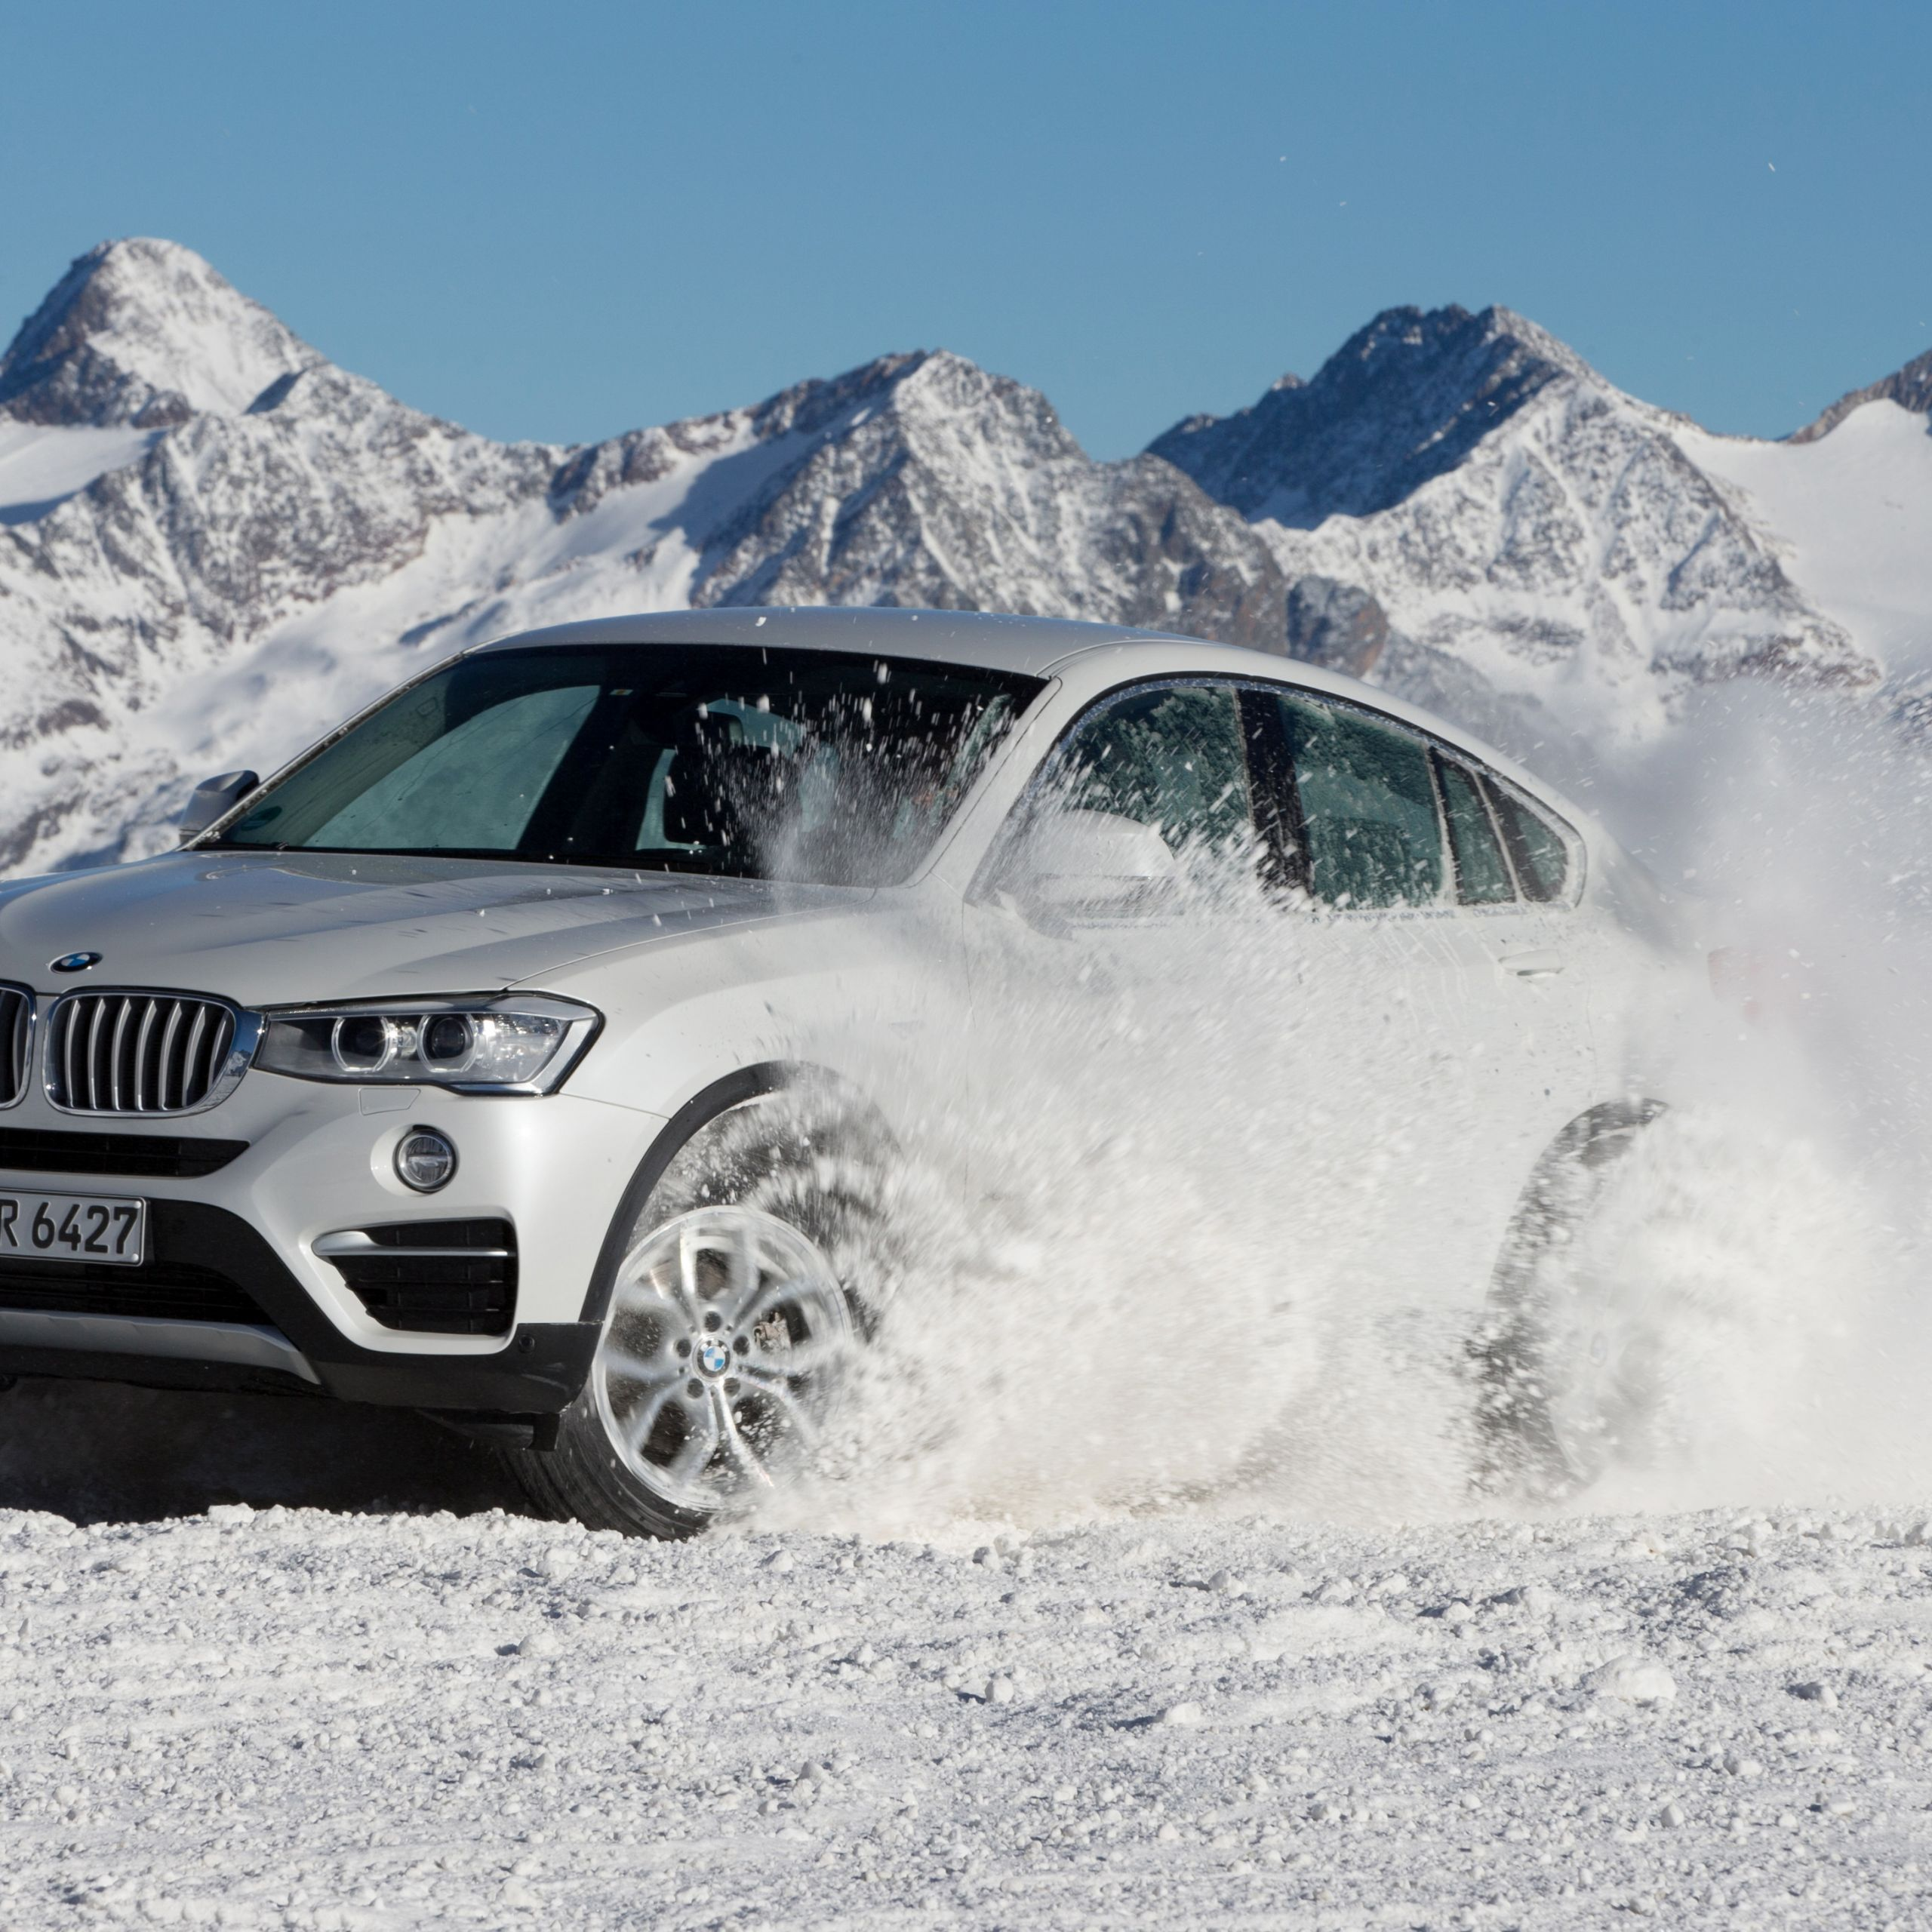 Used Bmw X6 Inspirational 2016 Bmw X4 2 0d Xdrive Review Baby X6 for the Price Of the